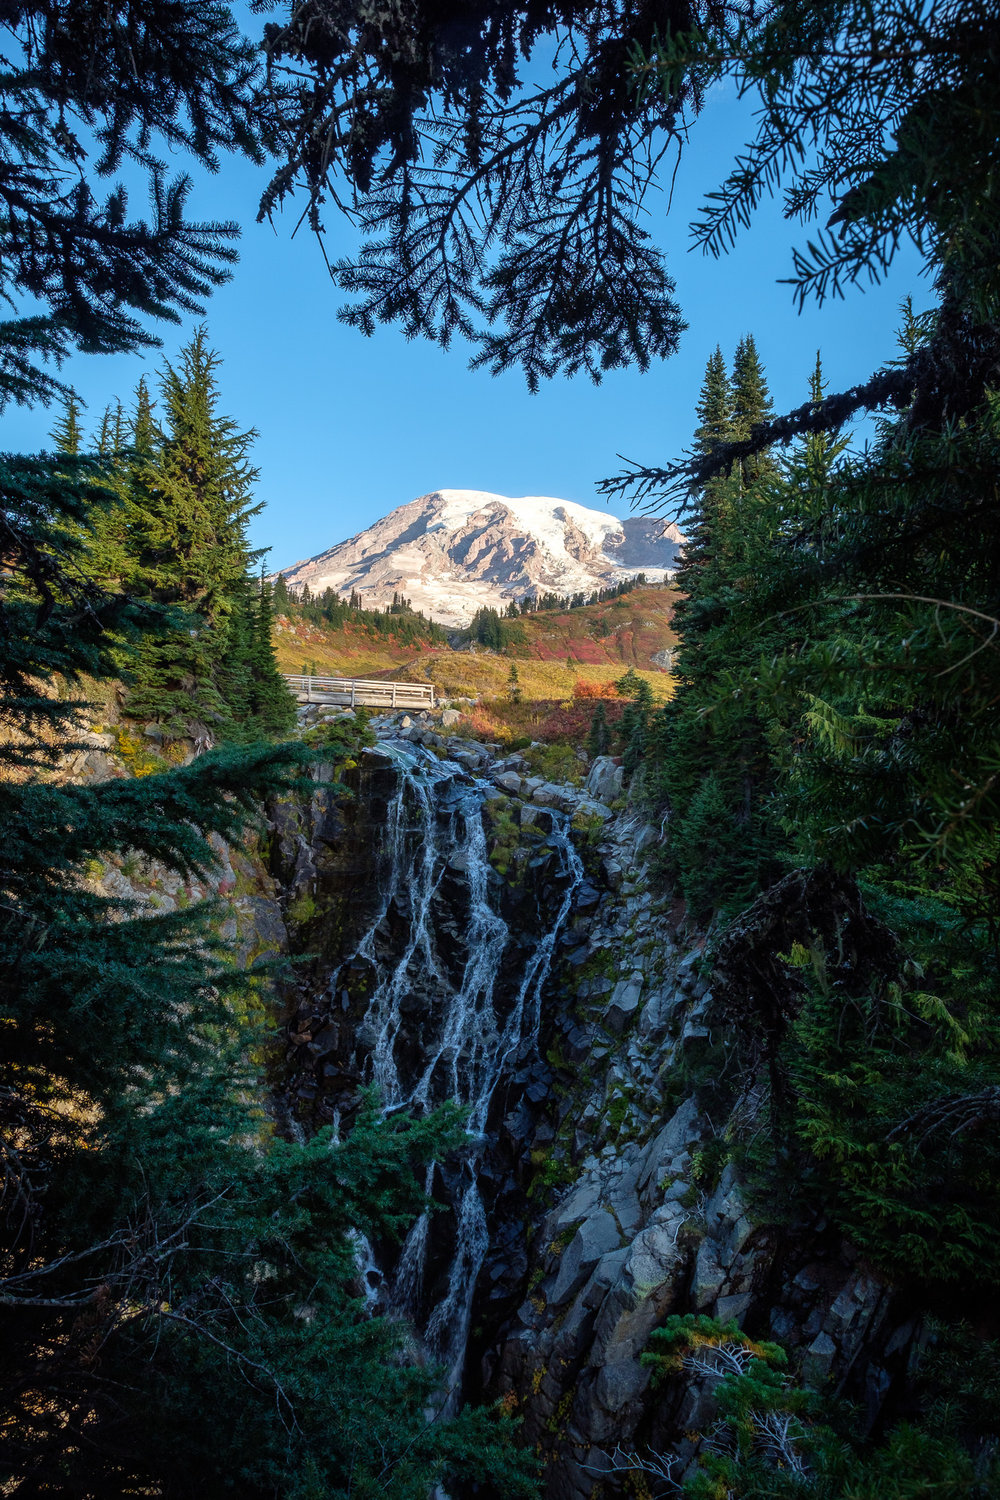 Myrtle Falls and Mount Rainier in October